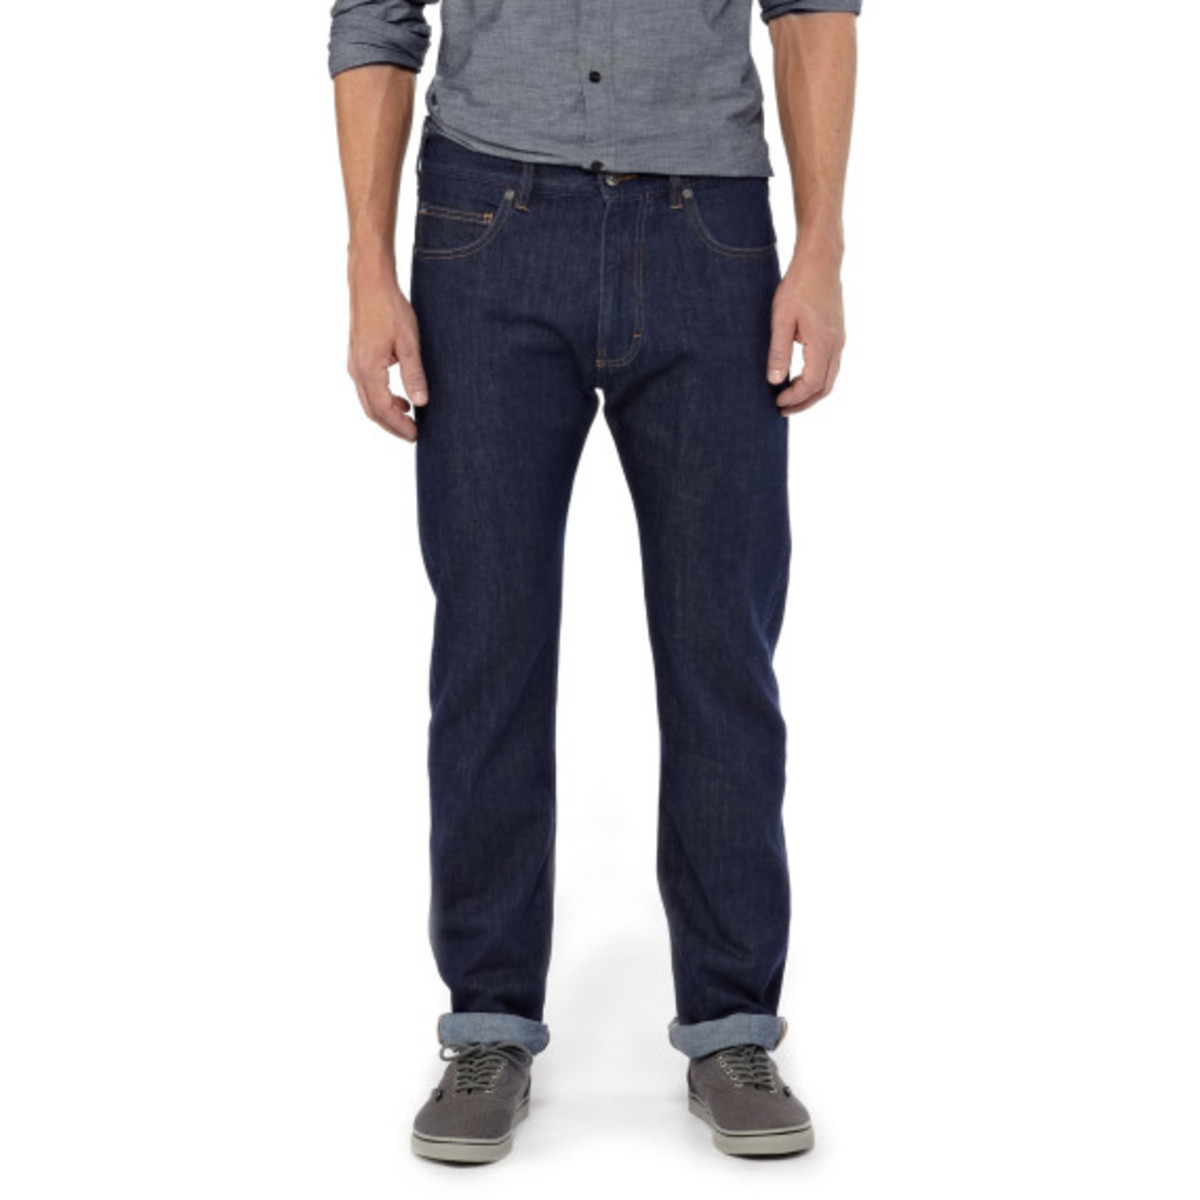 patagonia-launches-new-denim-collection-for-fall-2015-04